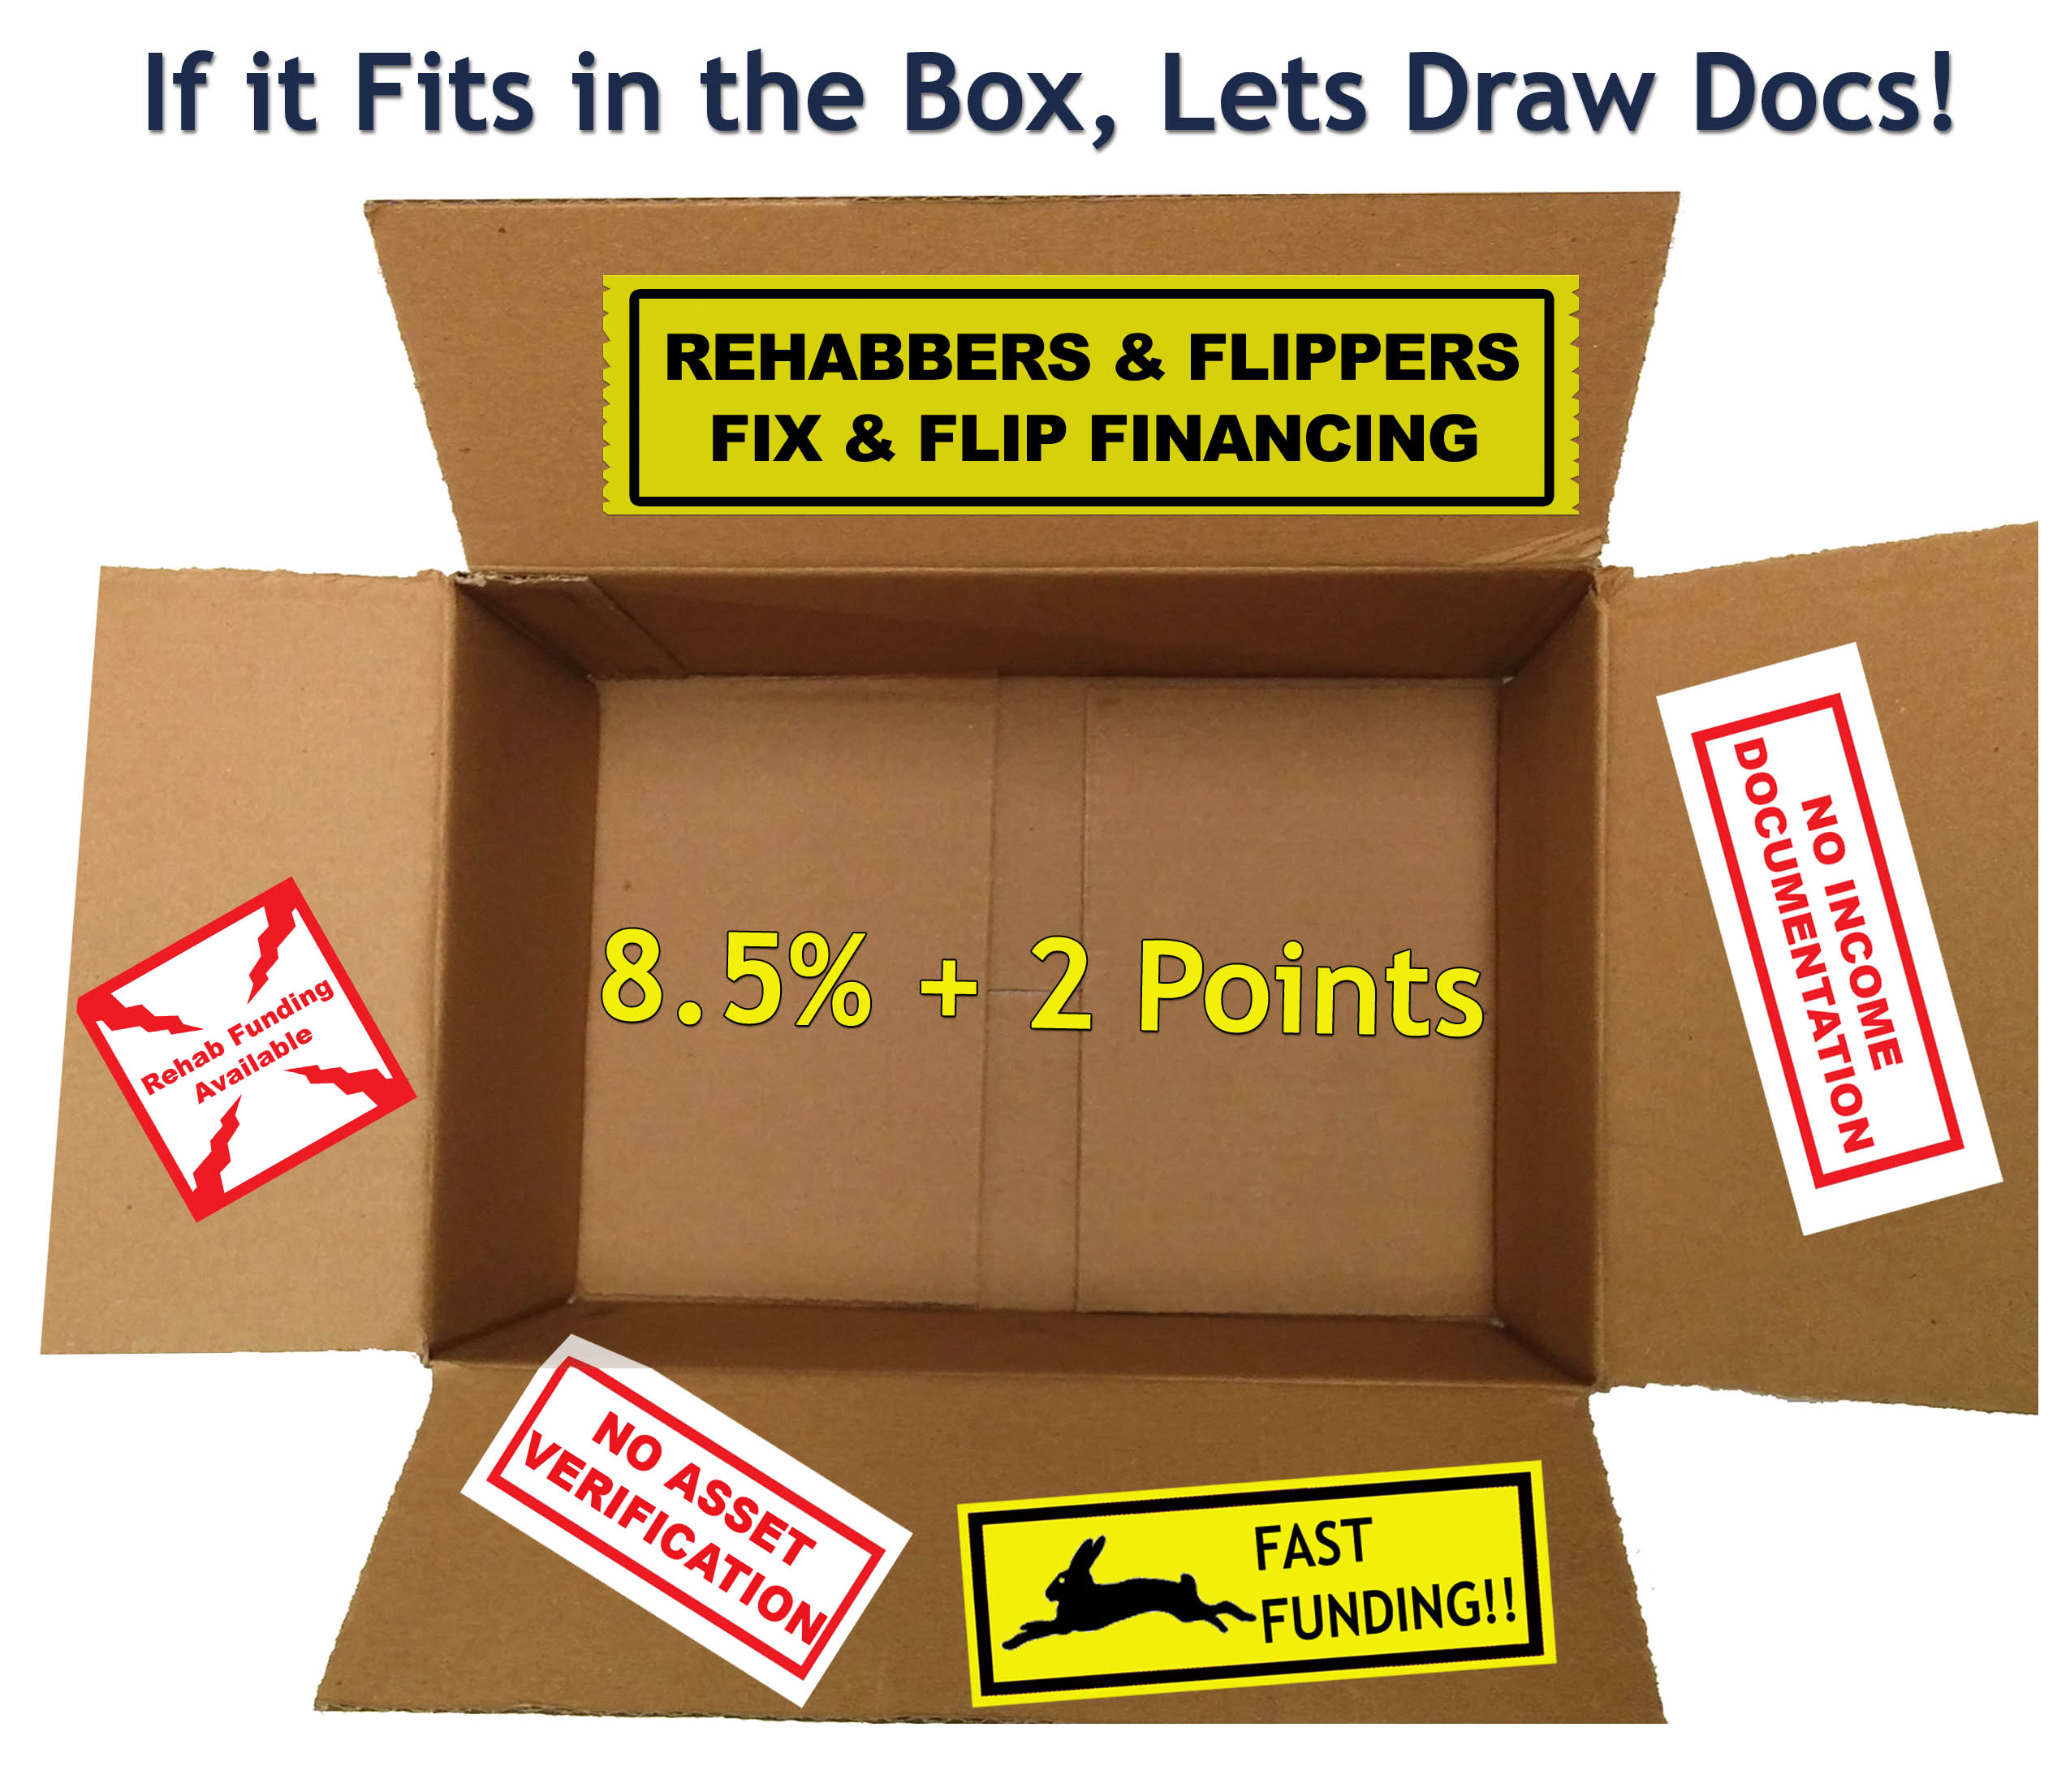 If it fits in the box, lets draw docs!